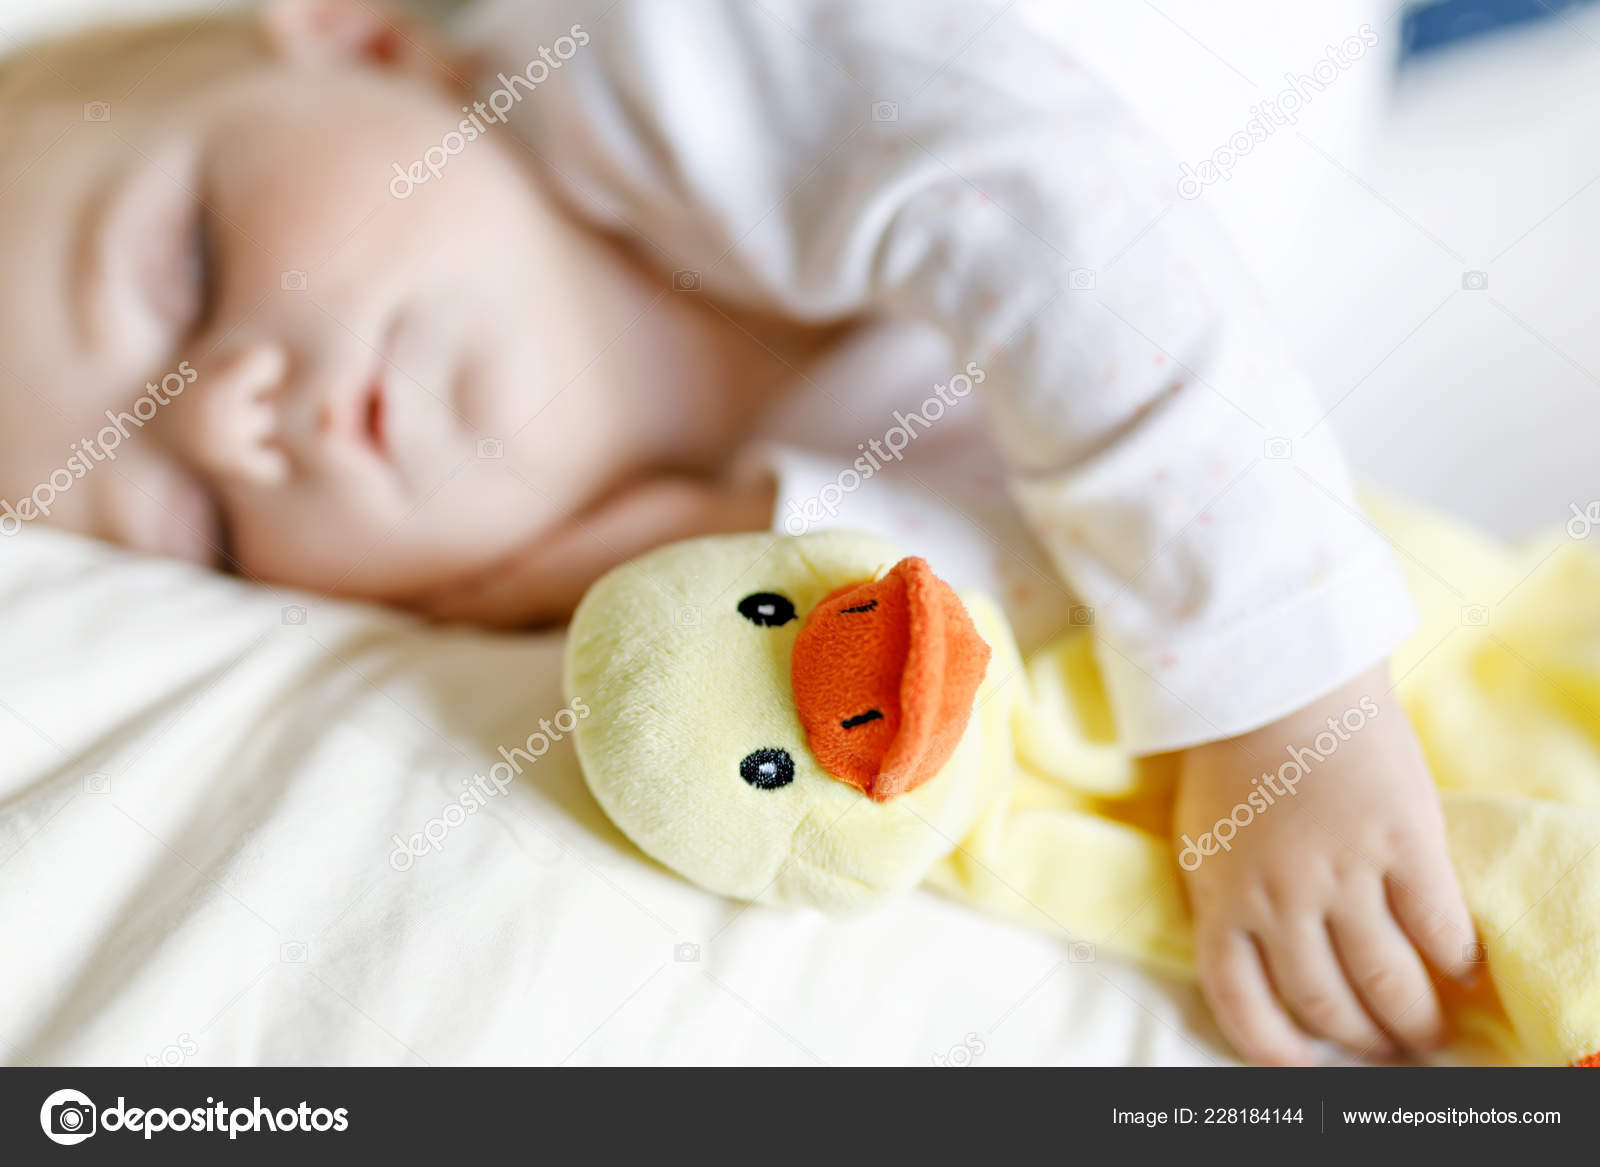 Cute Adorable Baby Girl Of 6 Months Sleeping Peaceful In Bed At Home Closeup Of Beautiful Calm Child Little Newborn Kid Sleeping With Plush Toy Duck Stock Photo C Romrodinka 228184144